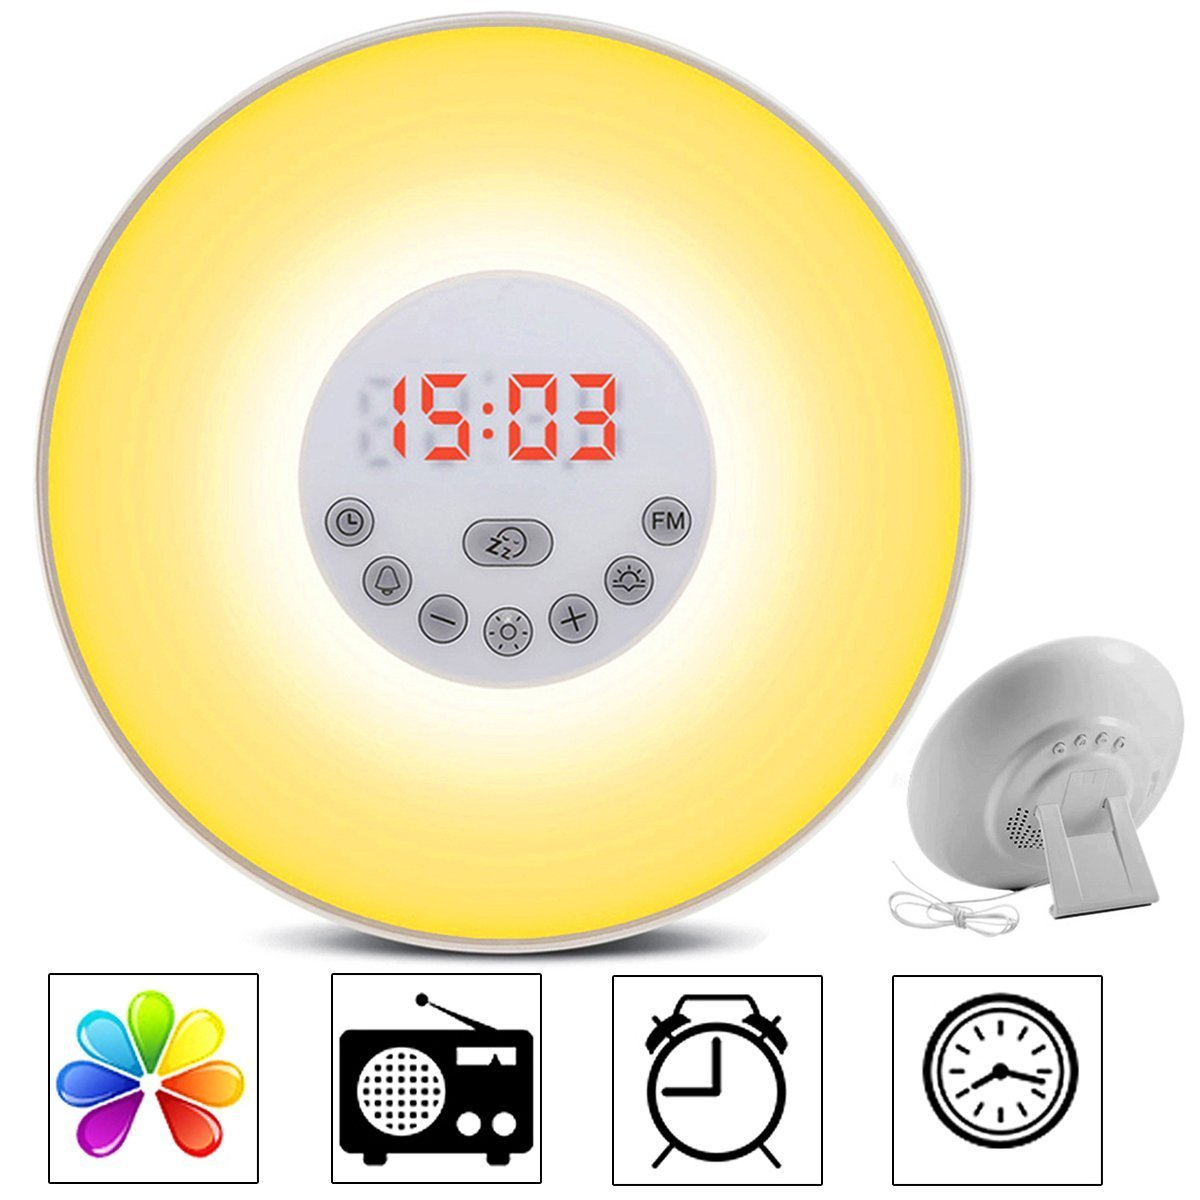 totobay Wake Up Light, 2nd Generation} Sunrise Simulation Snooze Alarm Clock Bedside Night Light with Nature Sounds, FM Radio, Touch Control and USB Charger TOTOBAY Direct WP-P01